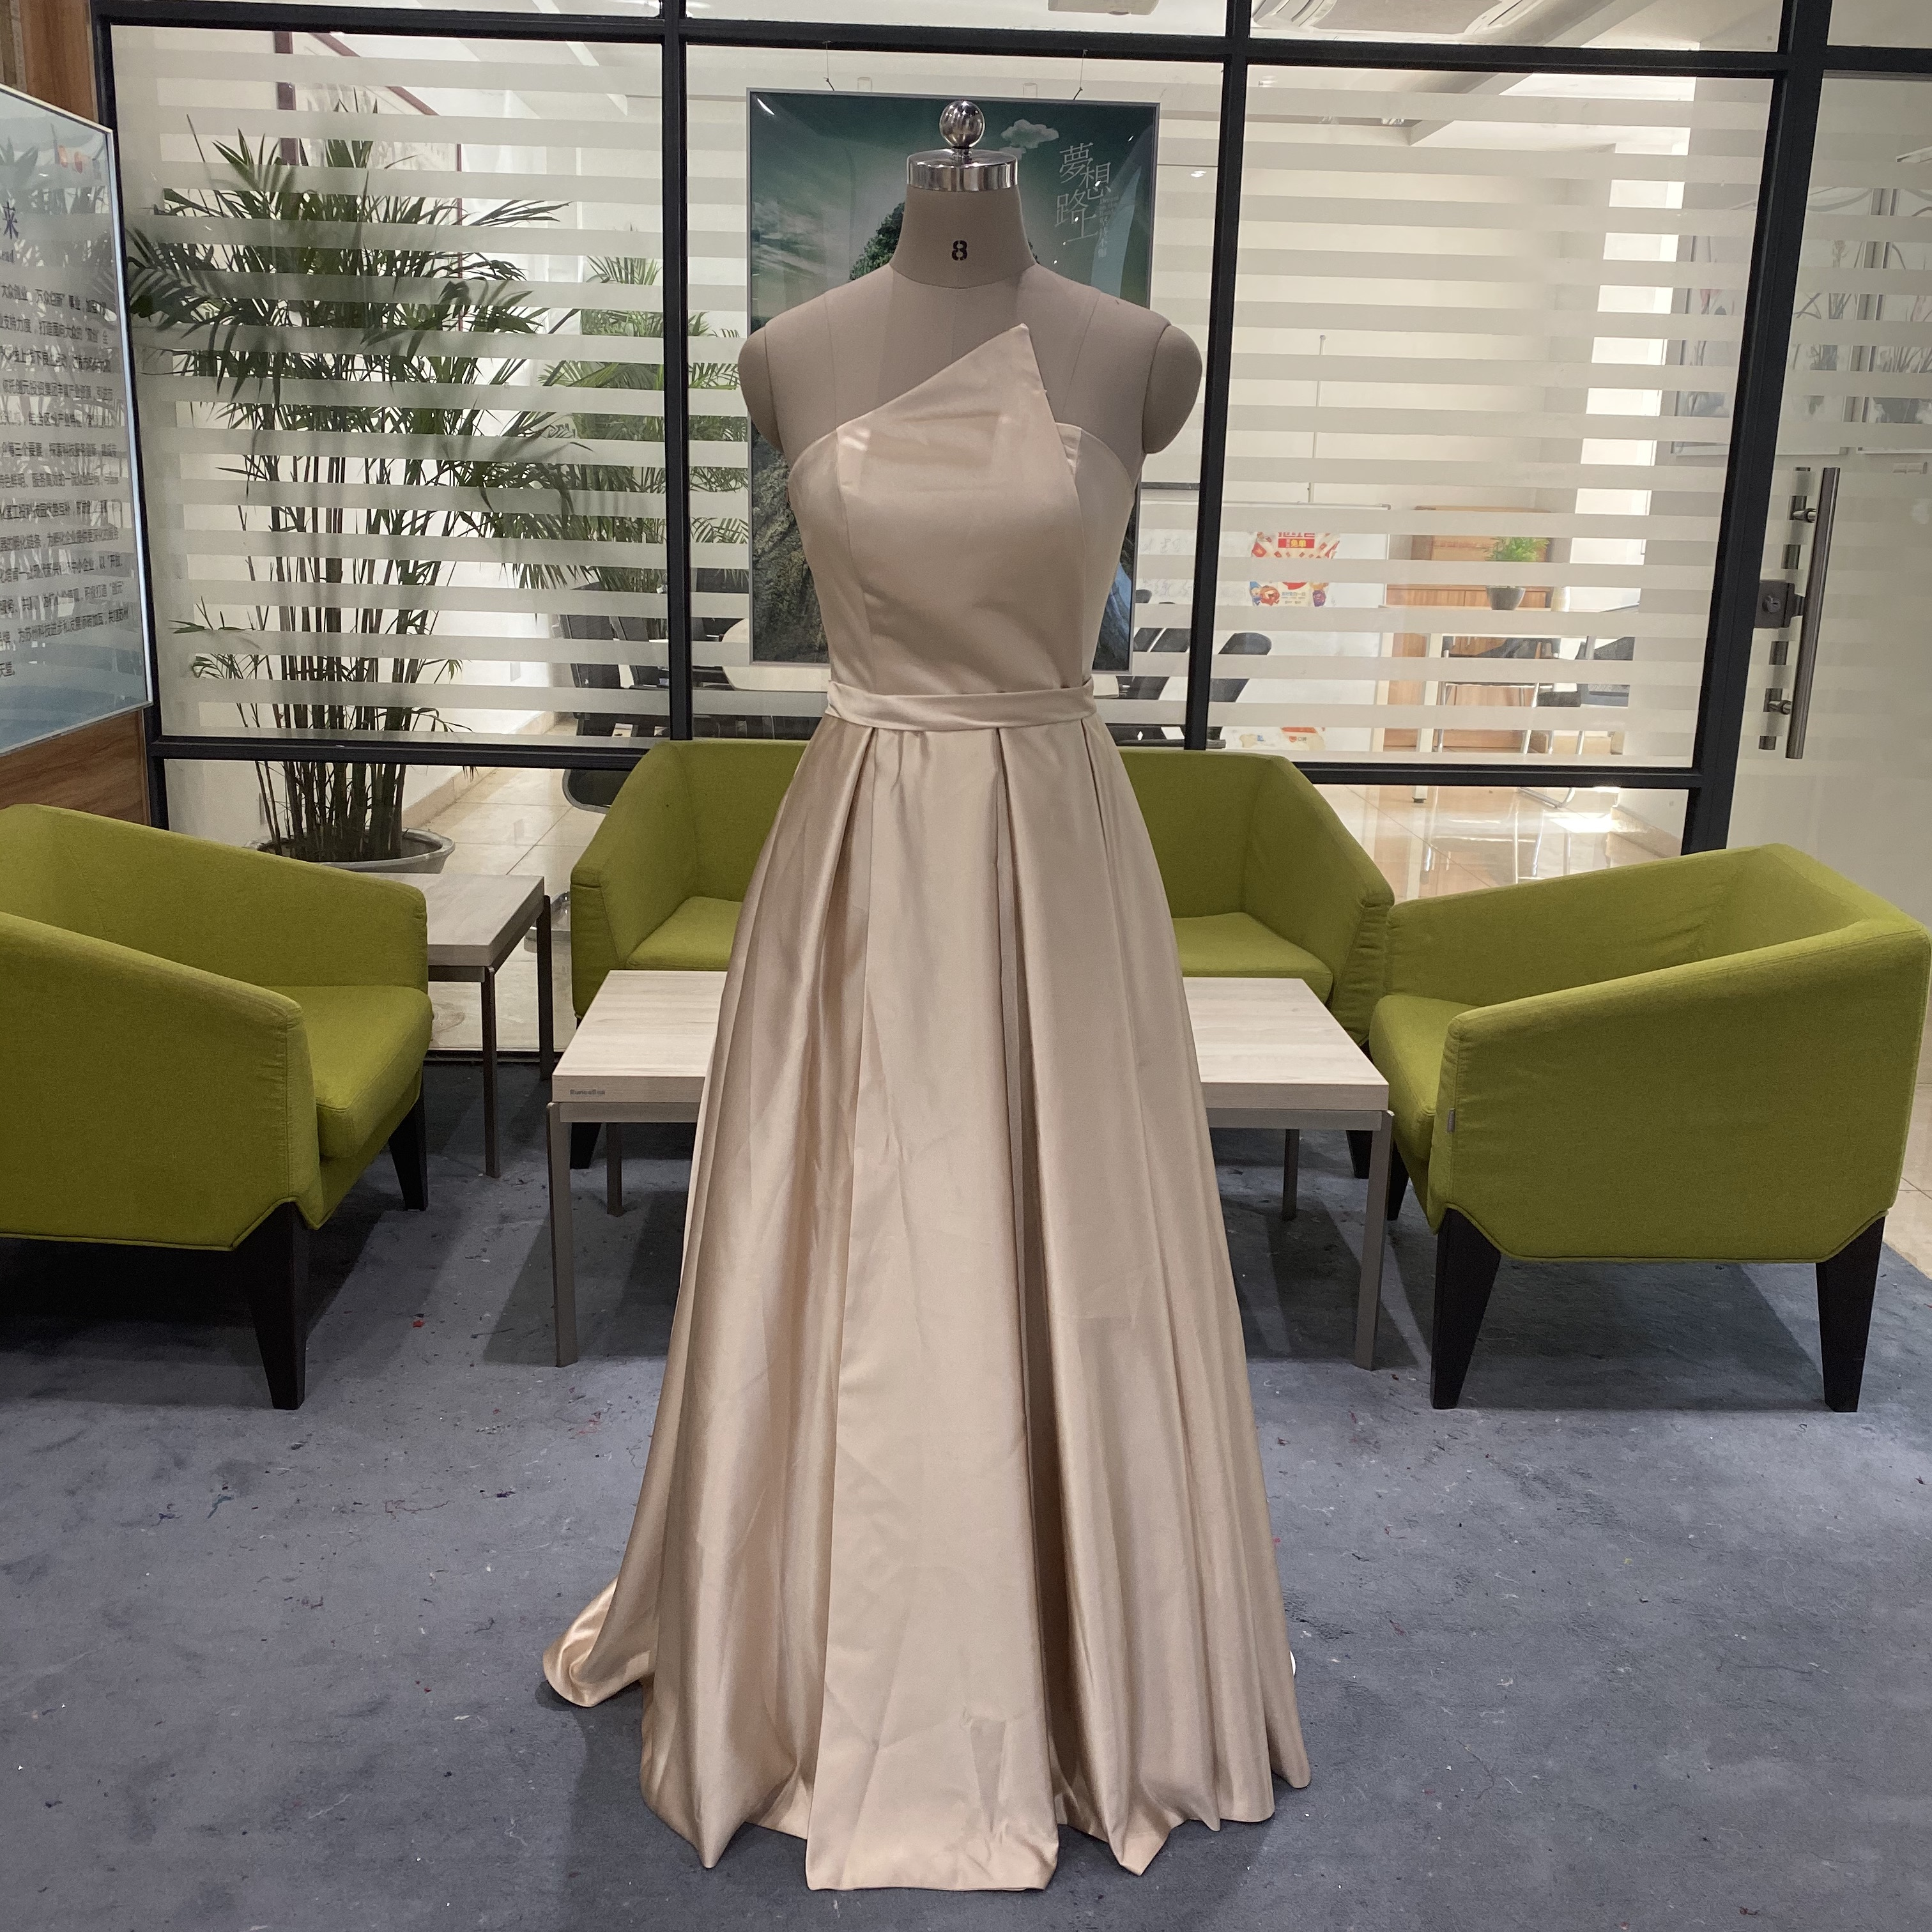 A-line Bridesmaid Dresses Long African Women 2020 Sleeveless Long Maid Of Honor Dress Sexy High Split Dress For Wedding Party